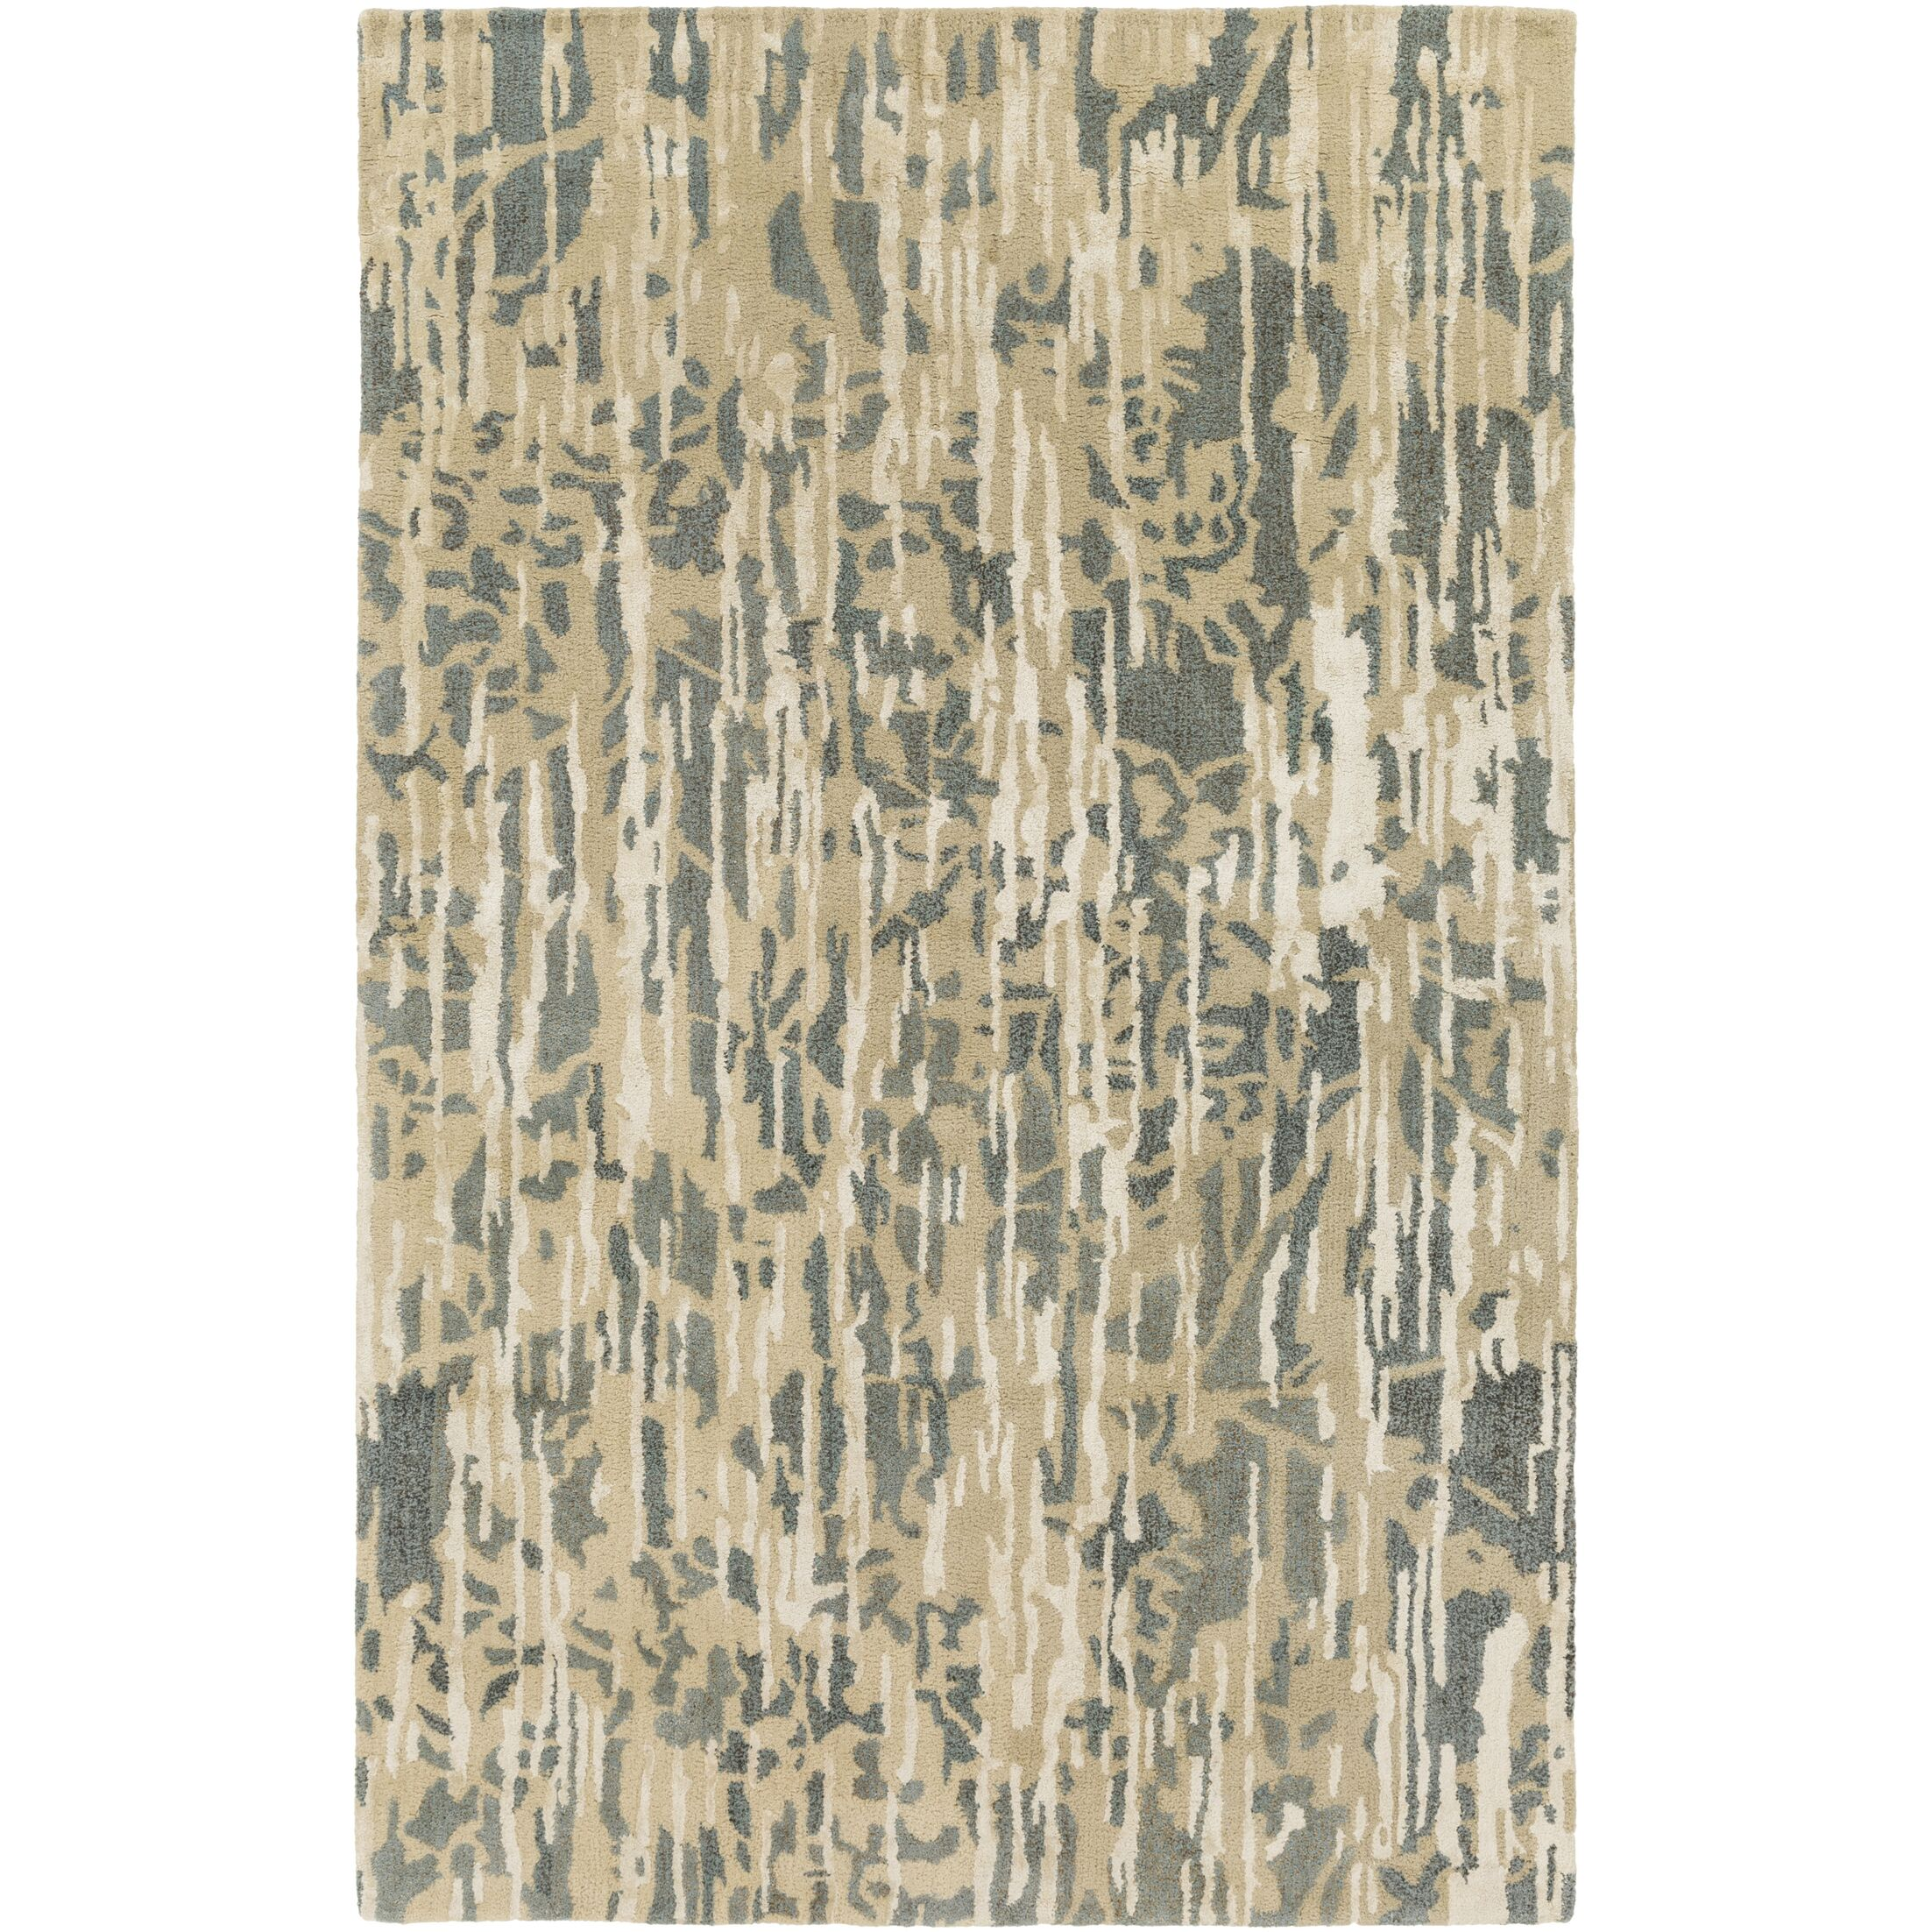 Zephyr Hand-Tufted Blue/Brown Area Rug Rug Size: Rectangle 5' x 7'6